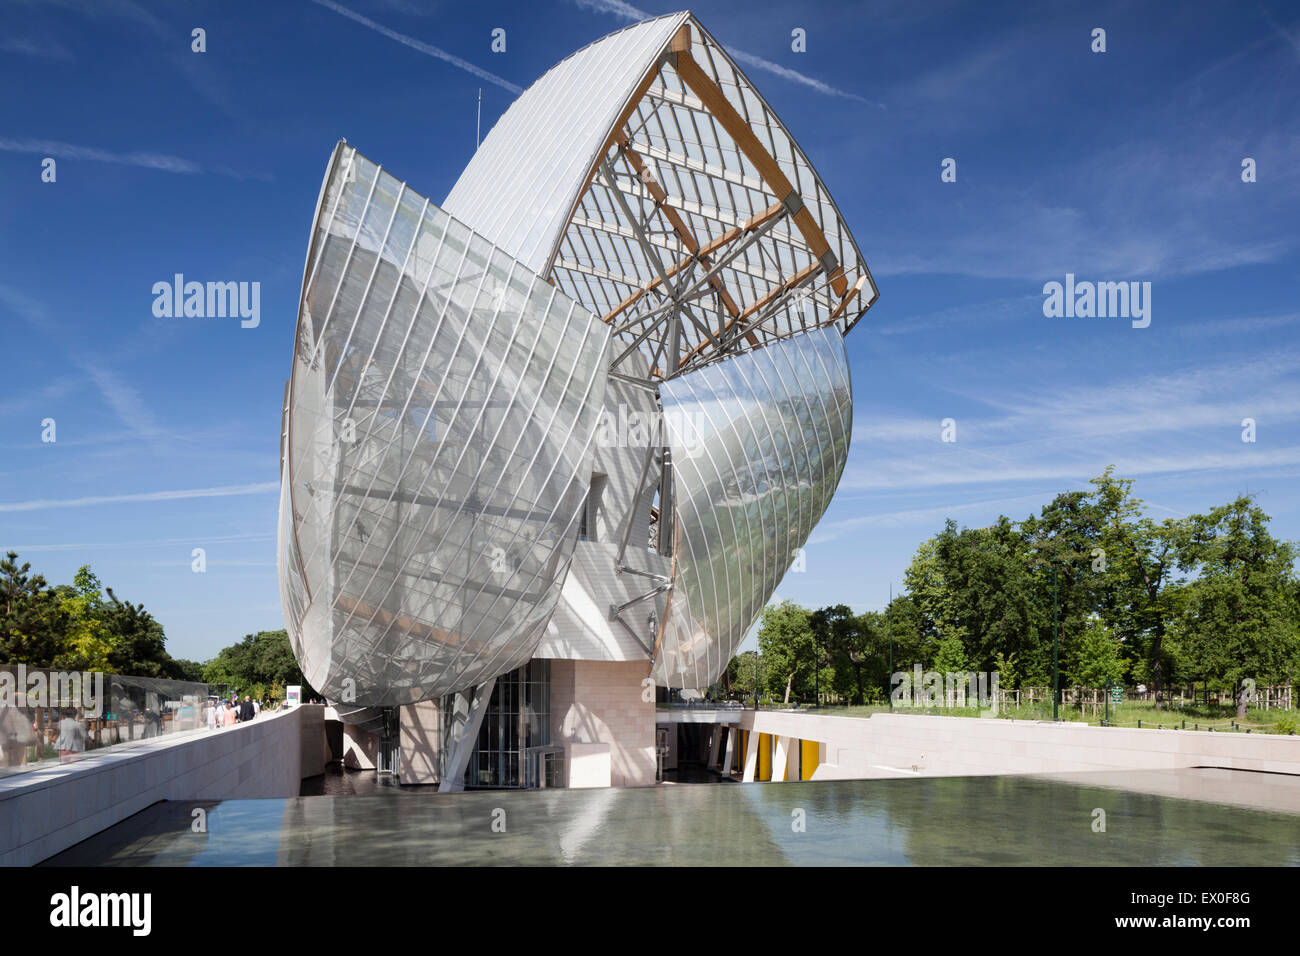 Fondation Louis Vuitton, Bois de Boulogne, Paris, France. East facade view of a water feature in front of the sail - Stock Image